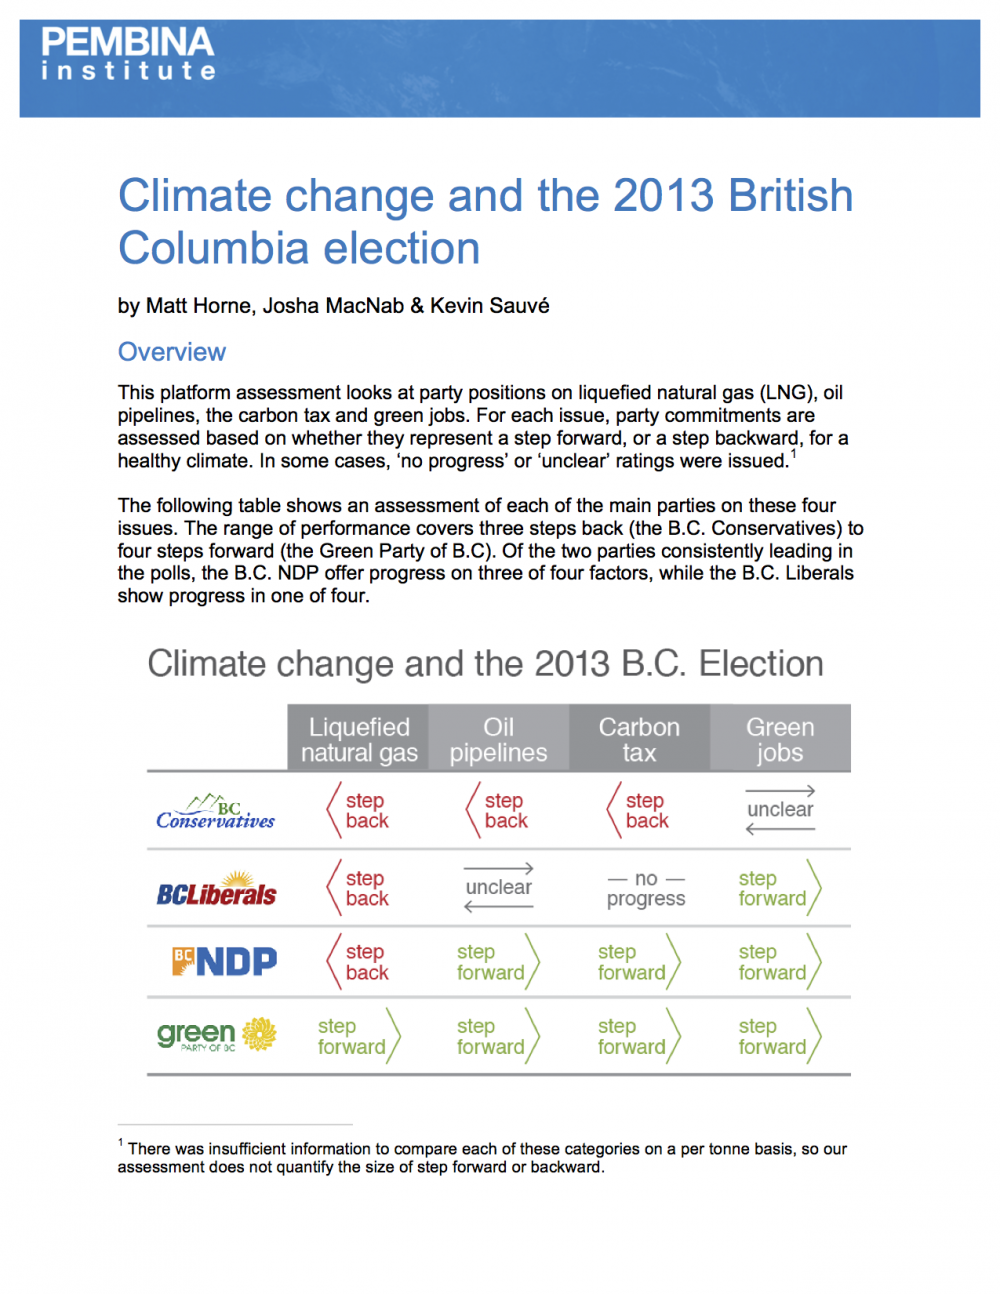 Climate change and the 2013 British Columbia election